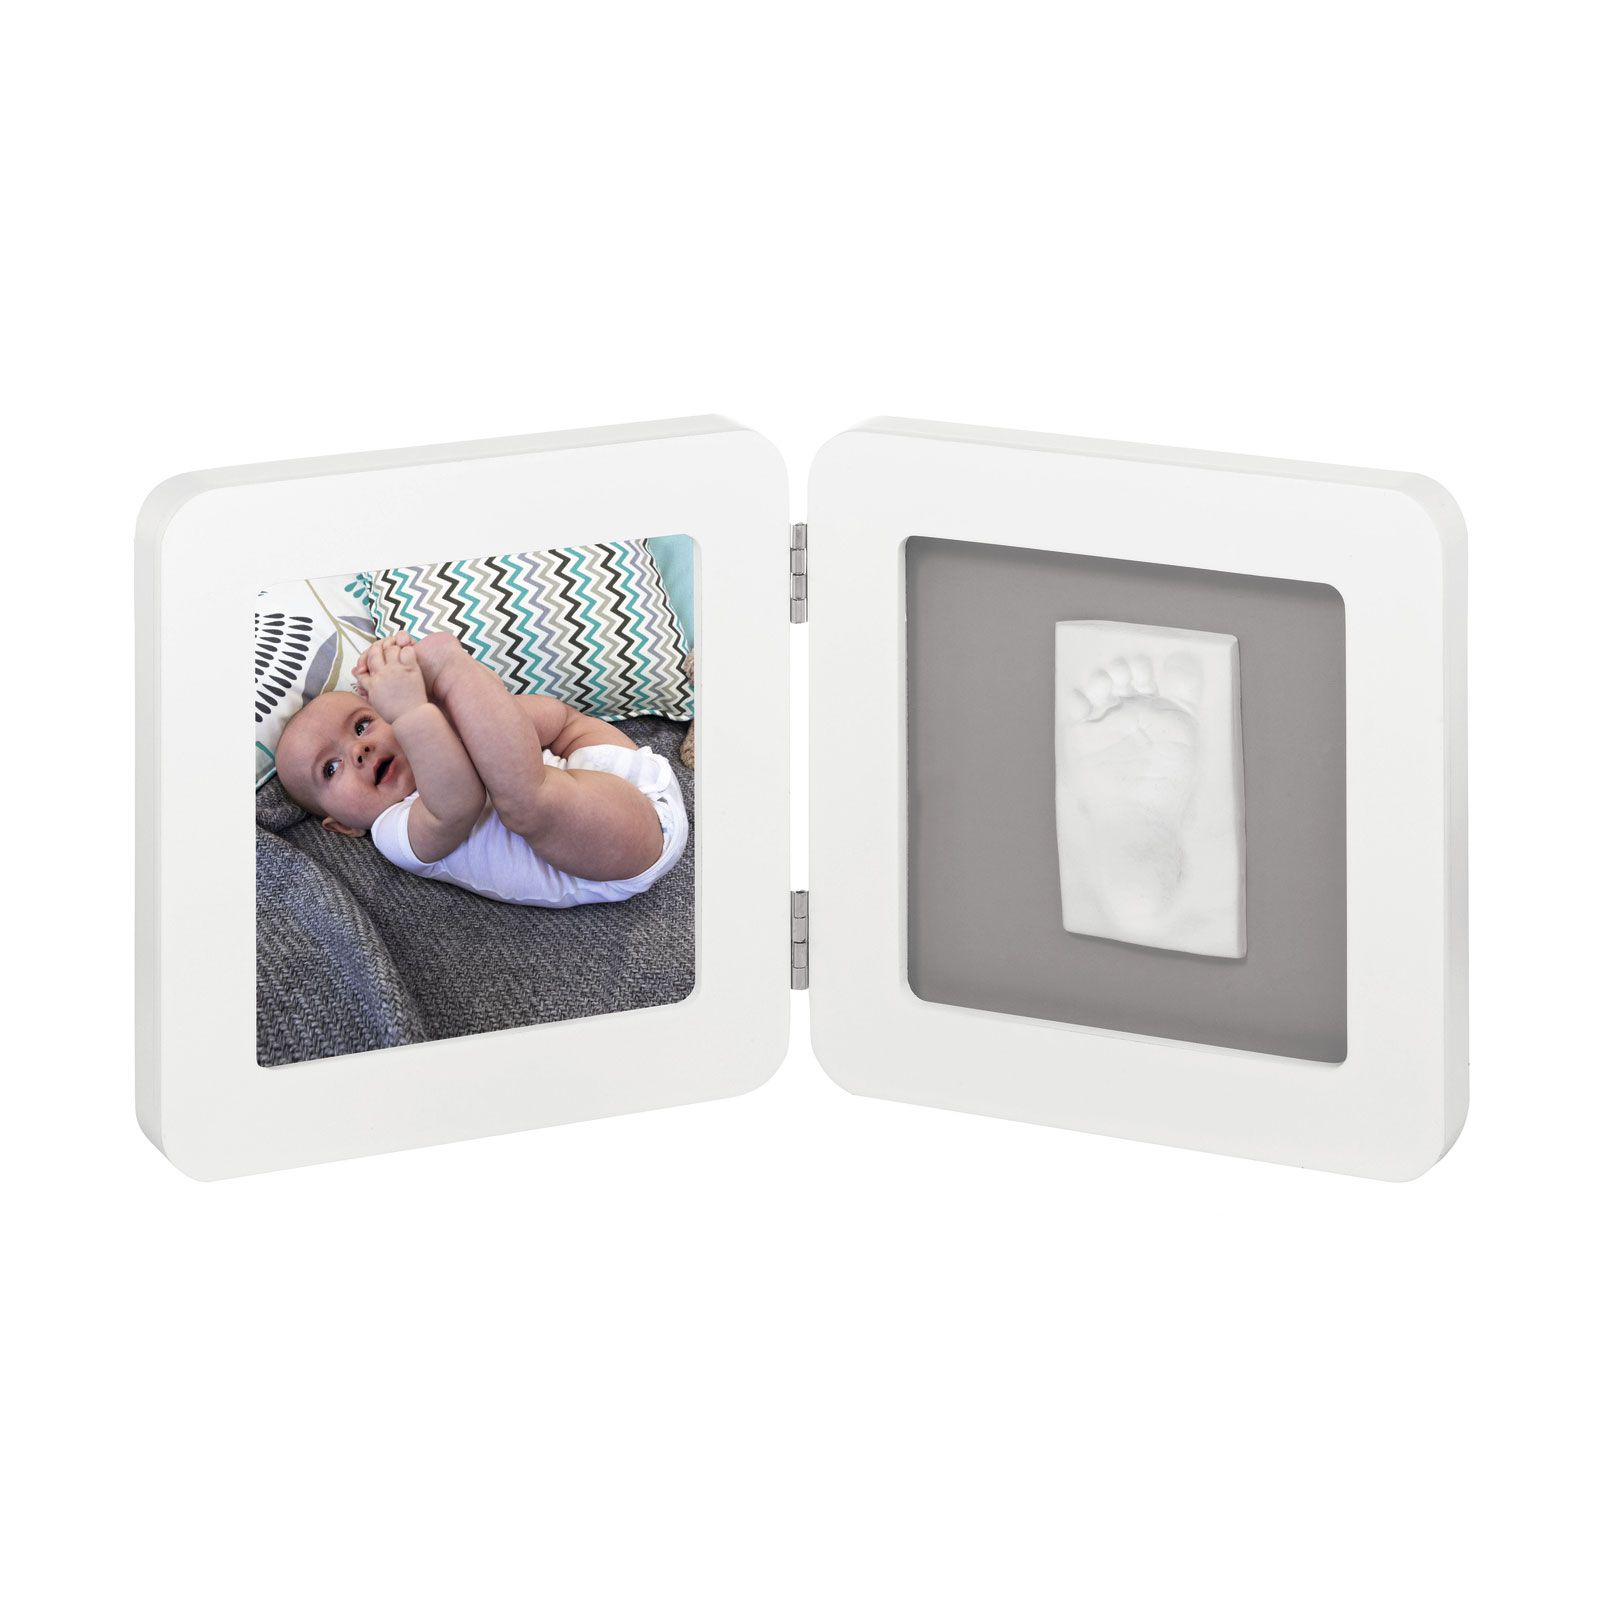 Touch Duplo 1p White e Grey - Baby Art Ref Imp91435